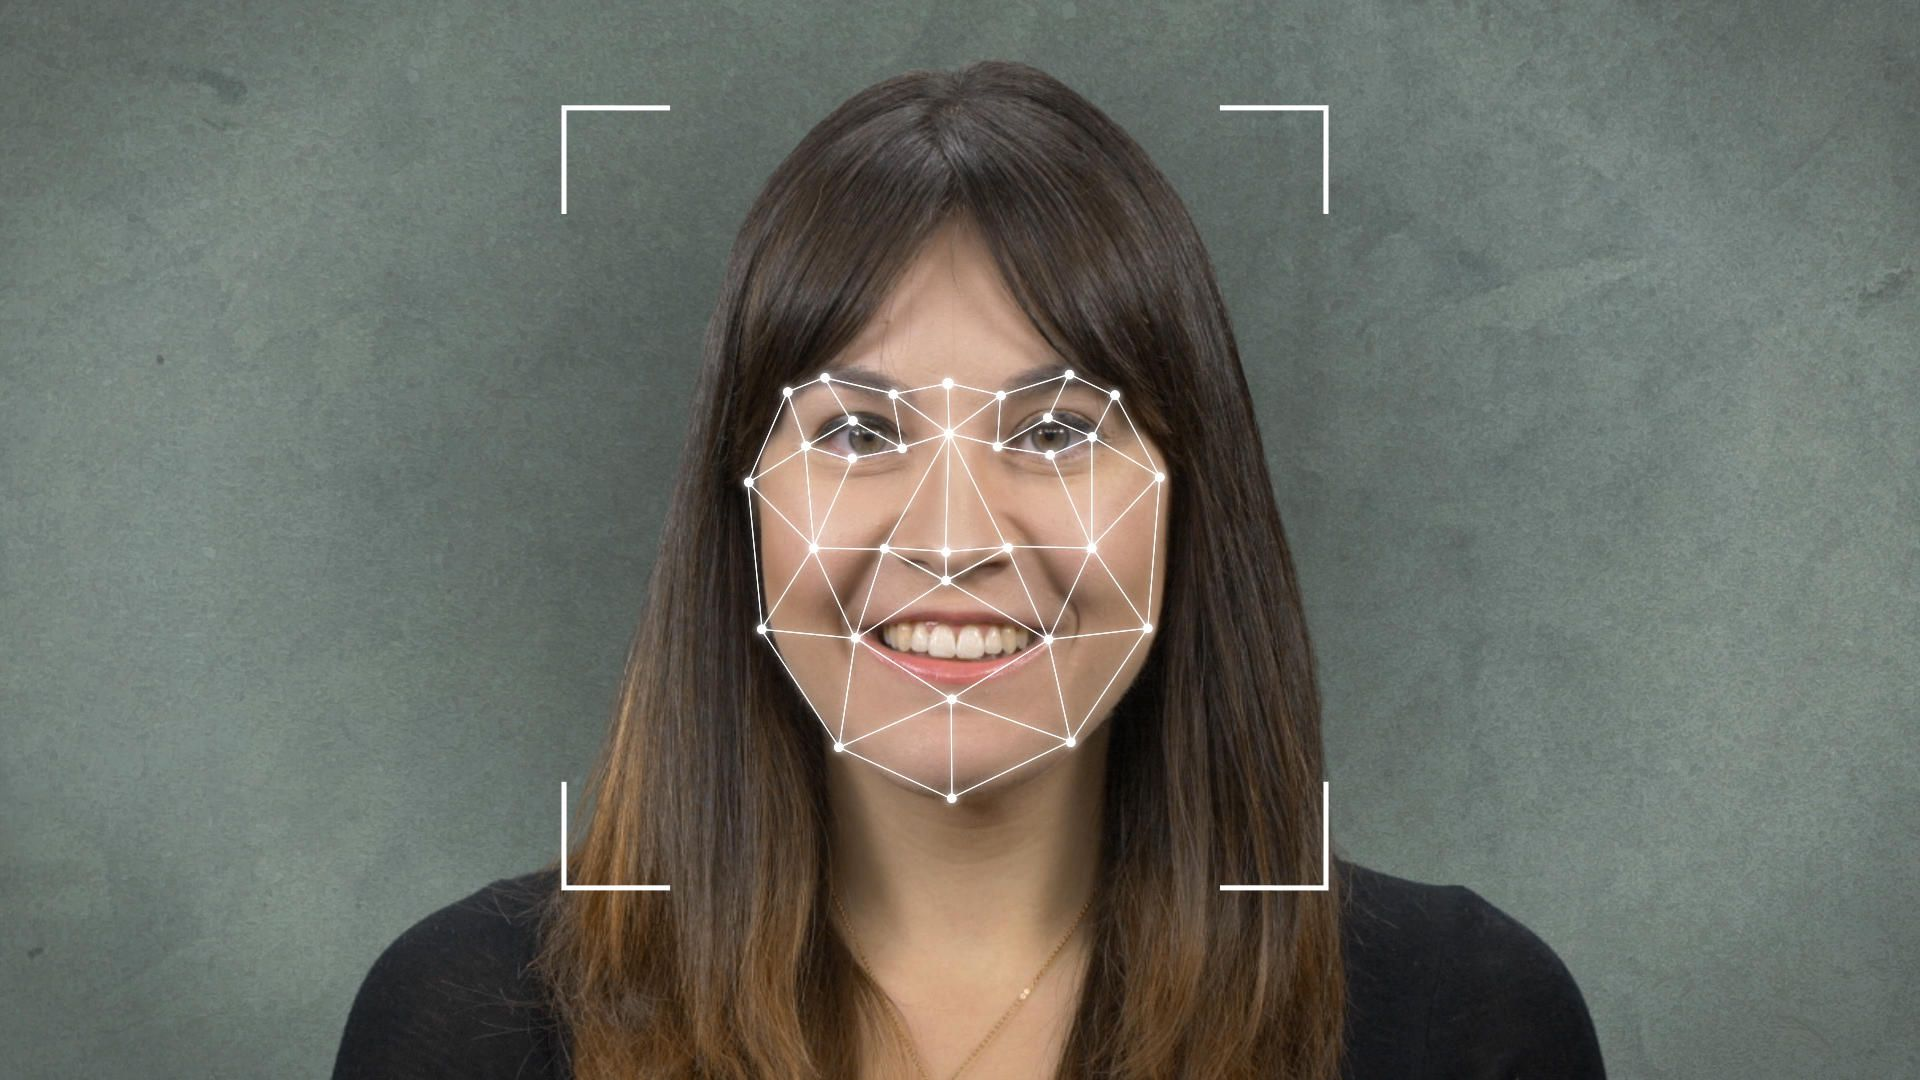 facial-recogntion-1010